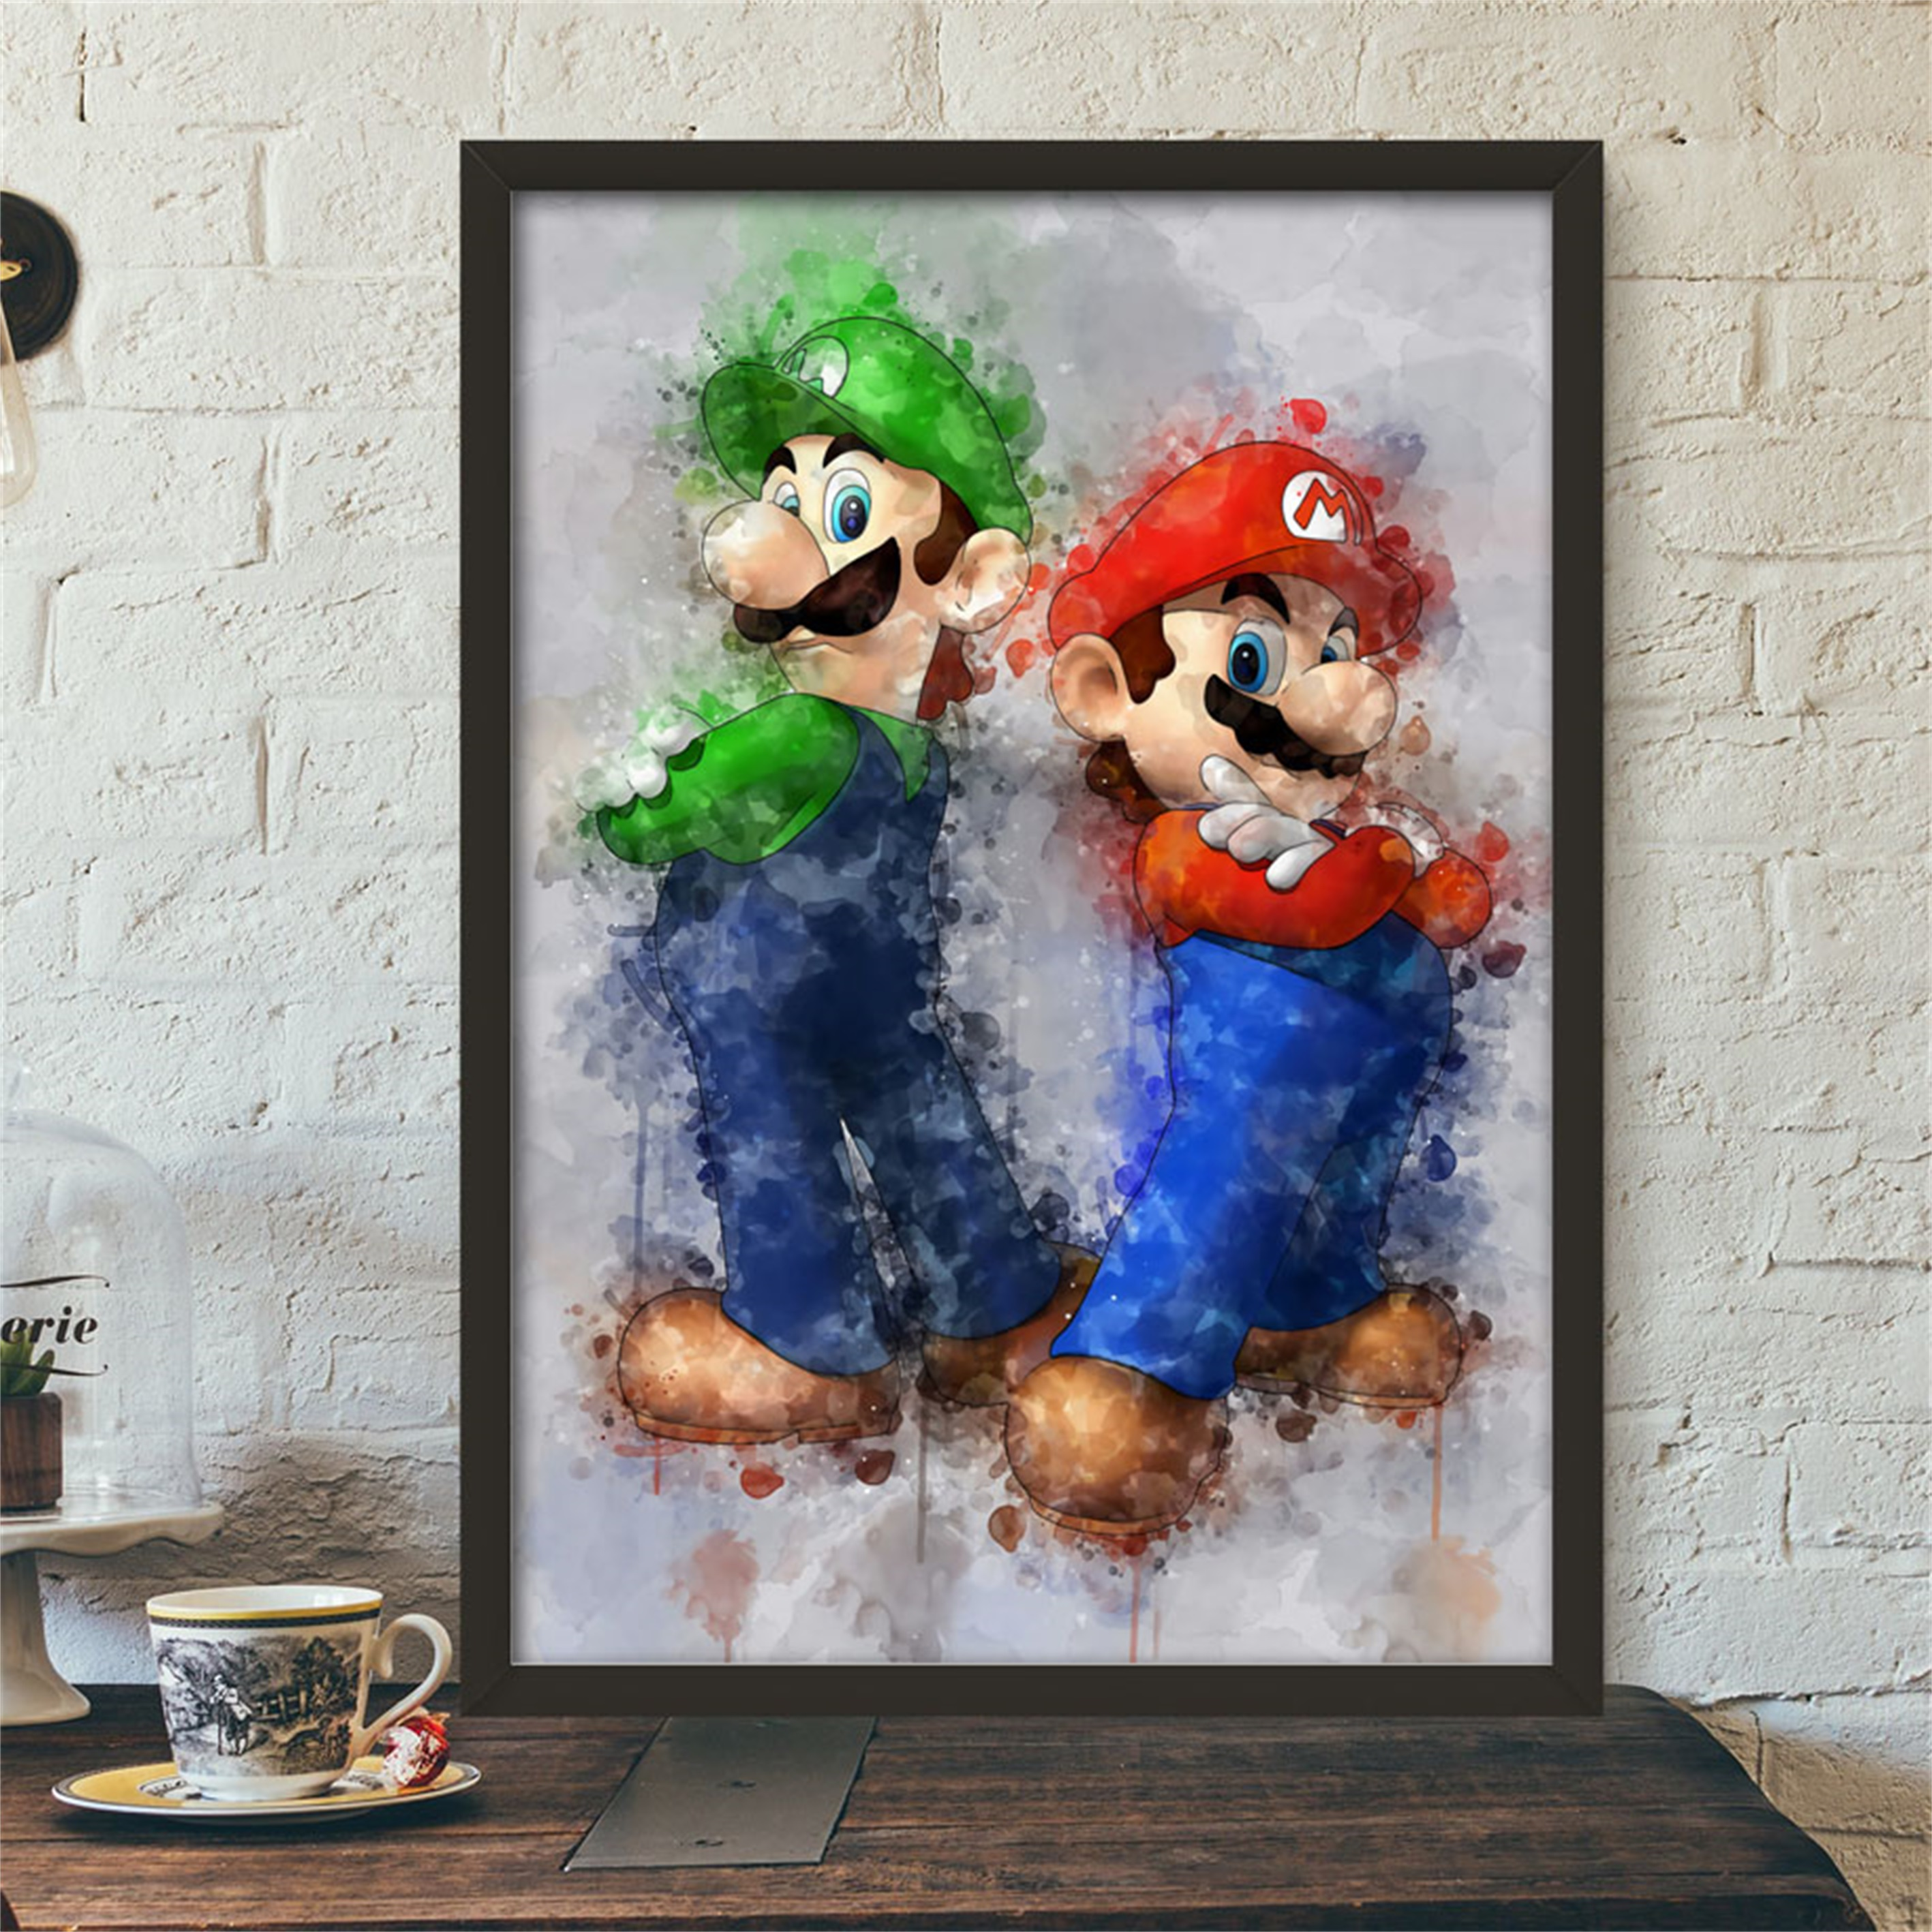 Anime Game Super Mario Bros Bowser Yoshi Wall Art Canvas Painting Posters And Prints Wall Pictures Baby Kids Room quadro cuadros(China)